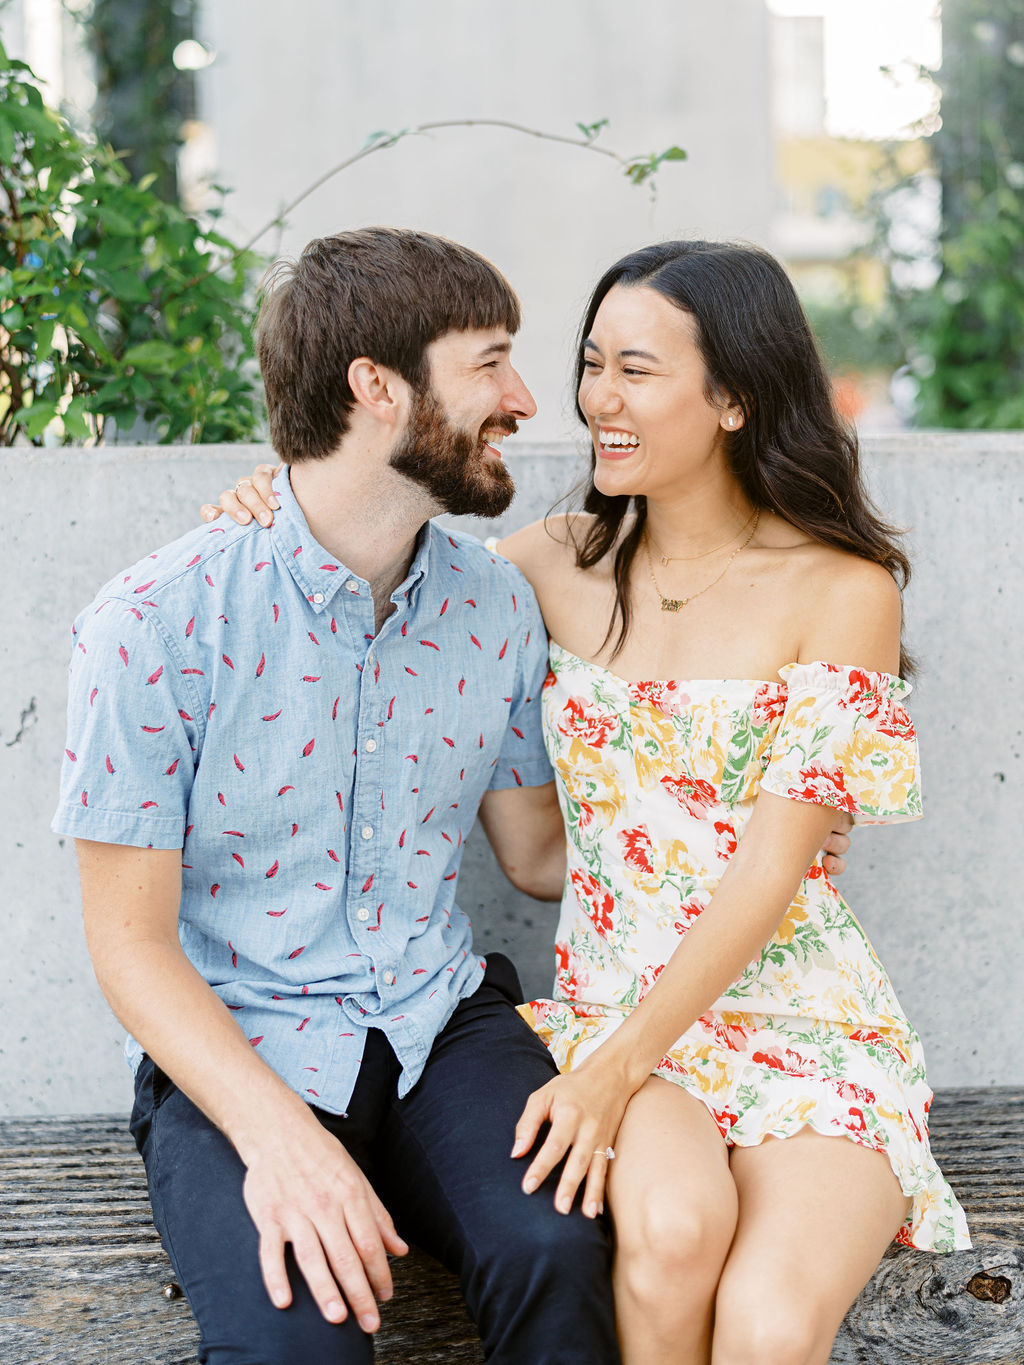 Austin-Intimate-Wedding-Elopement-Photograper-Film-Downtown-Engagement-Session-Home-6.jpg